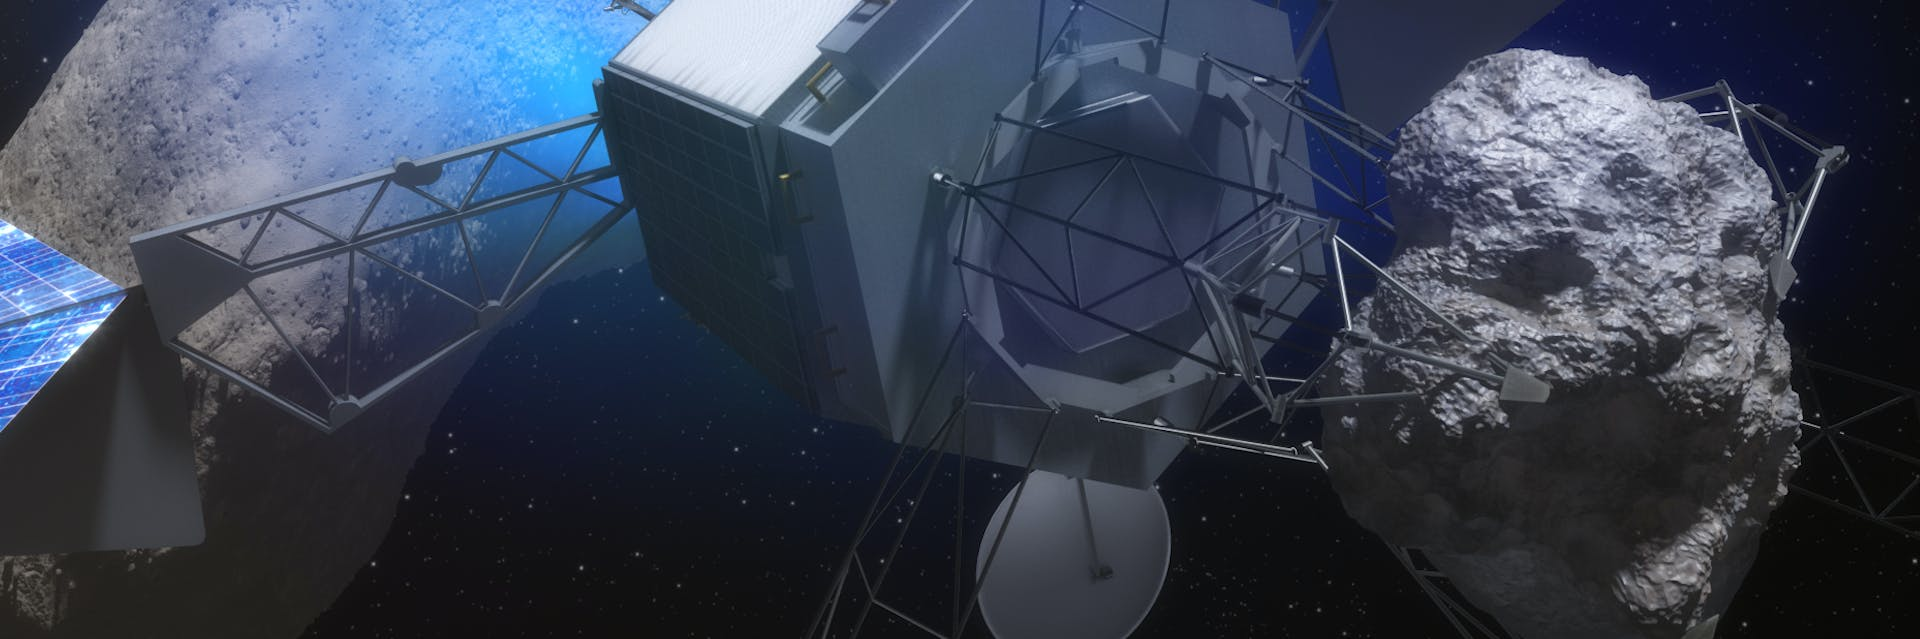 NASA asteroid redirect mission